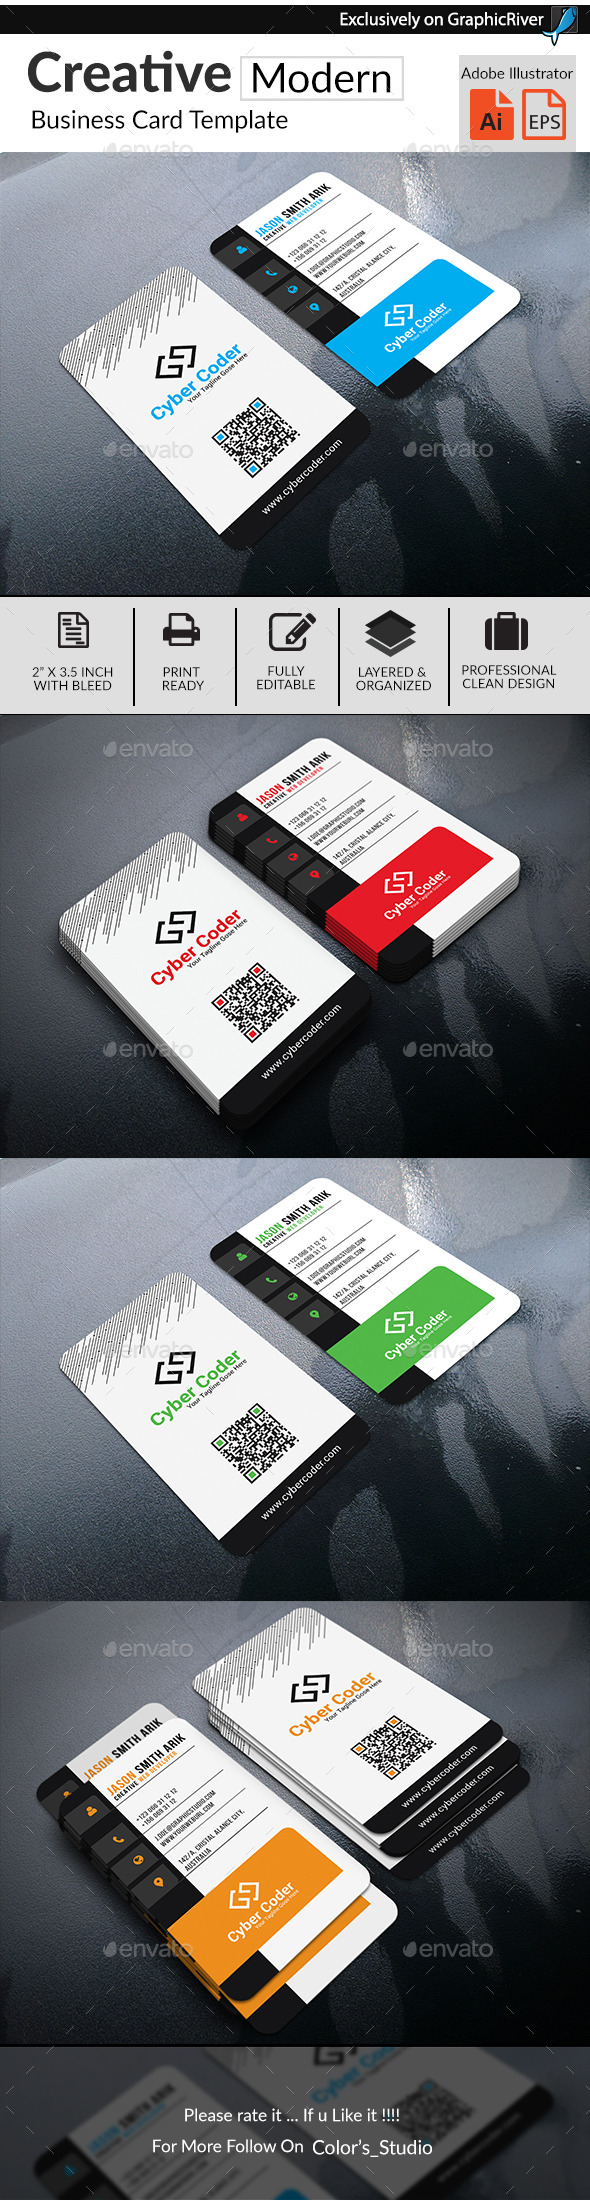 Creative Modern Business Card - Business Cards Print Templates